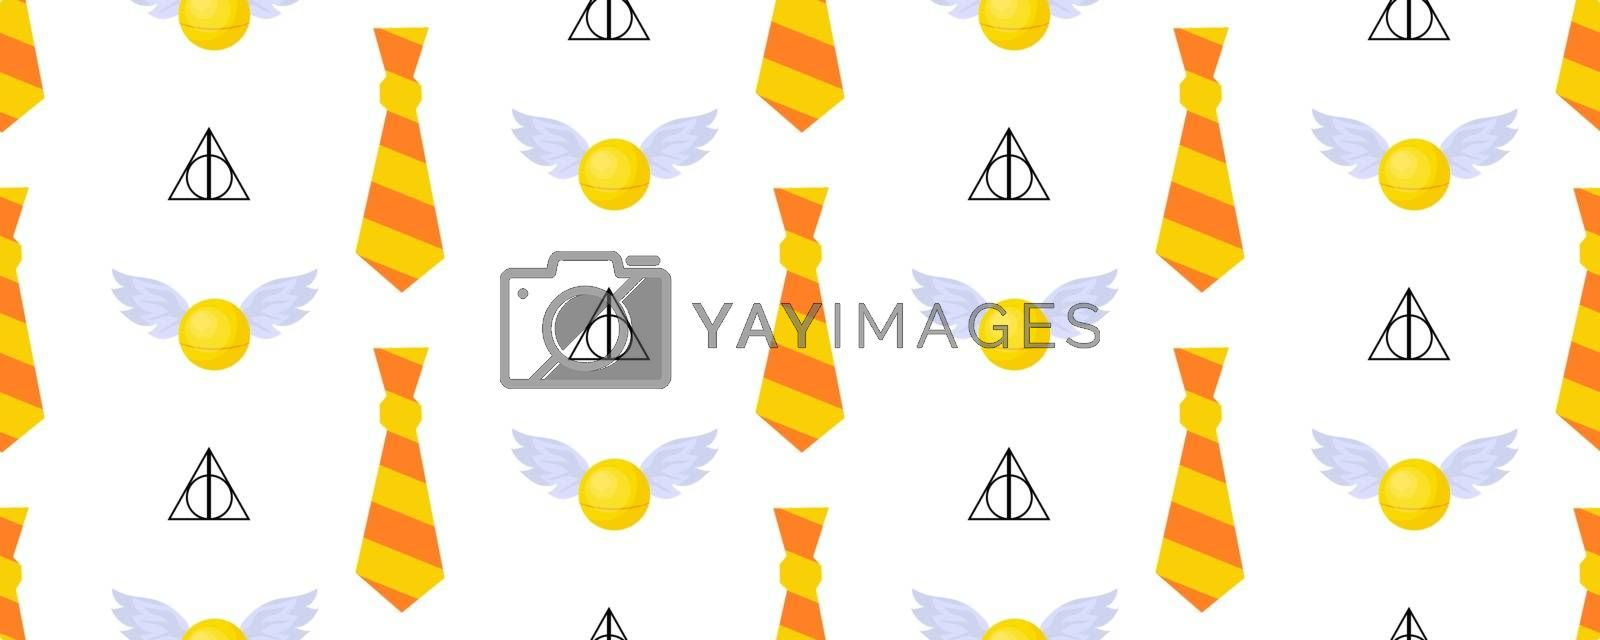 Seamless vector pattern. Children's design. Gryffindorf characters. The tie is striped. Orange and yellow. Magic Snitch.